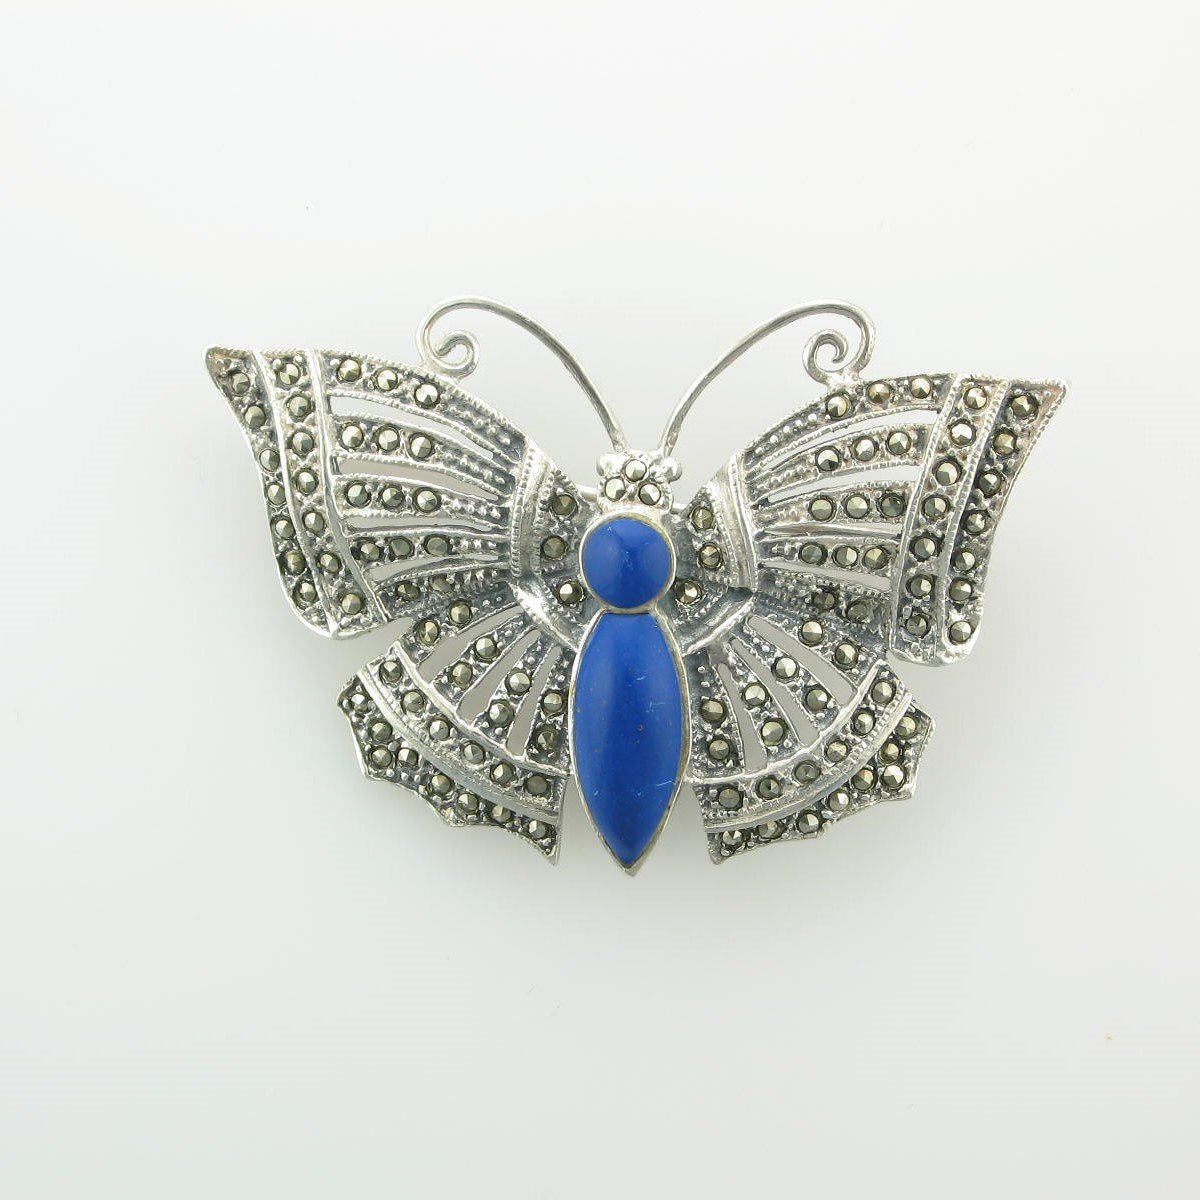 Lapis Lazuli & Marcasite Butterfly Pin set in Sterling Silver